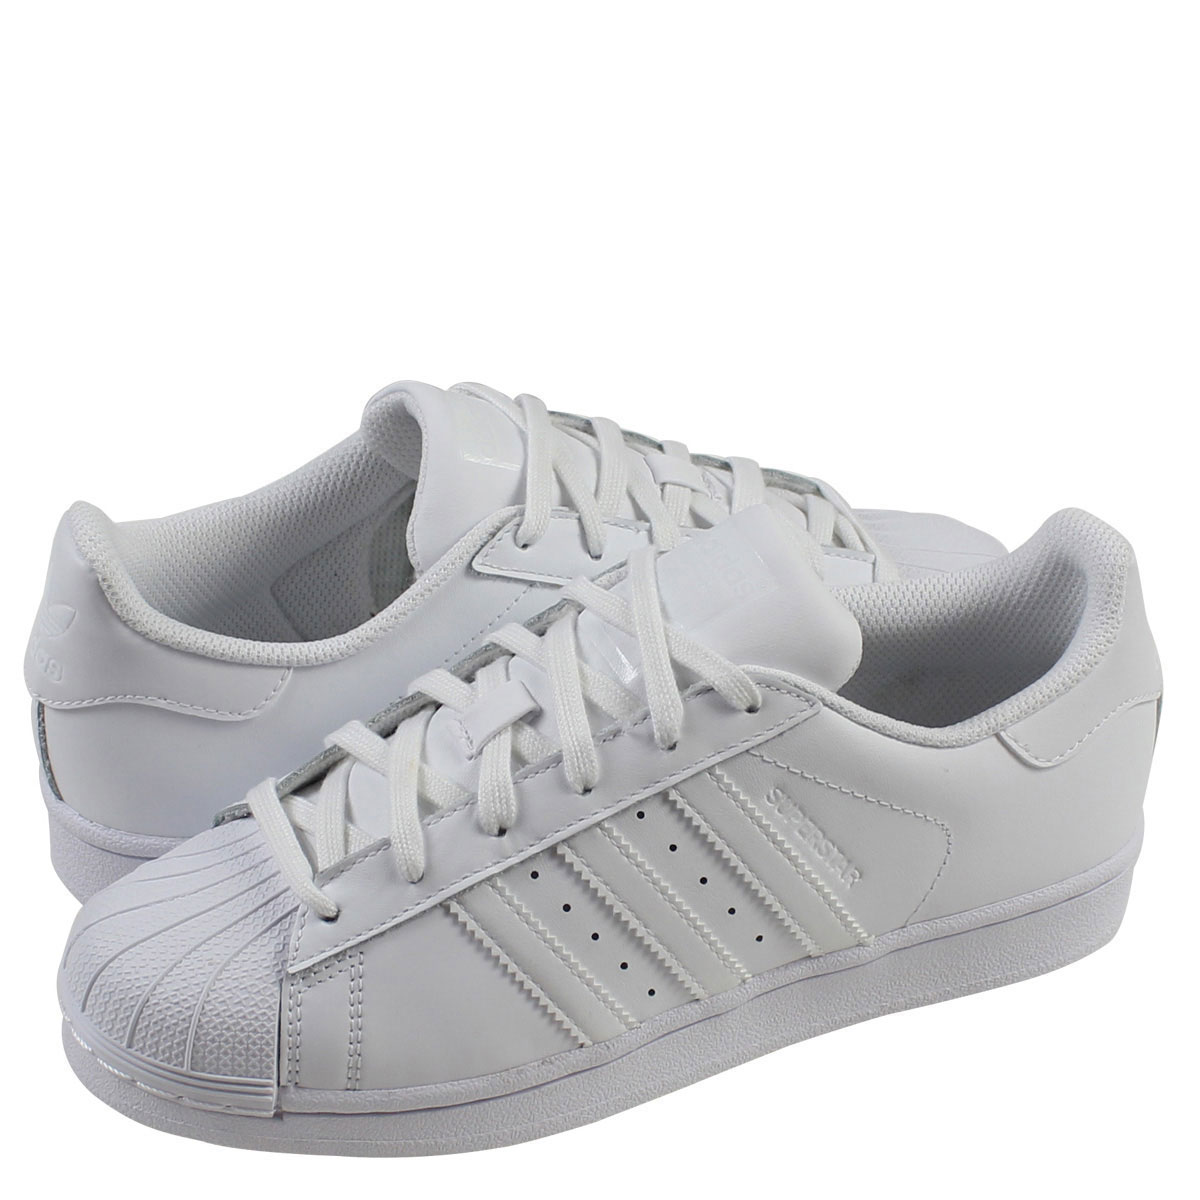 new product ba398 4ef53 adidas Originals adidas originals superstar sneakers Womens SUPERSTAR  FOUNDATION J B23641 shoes white